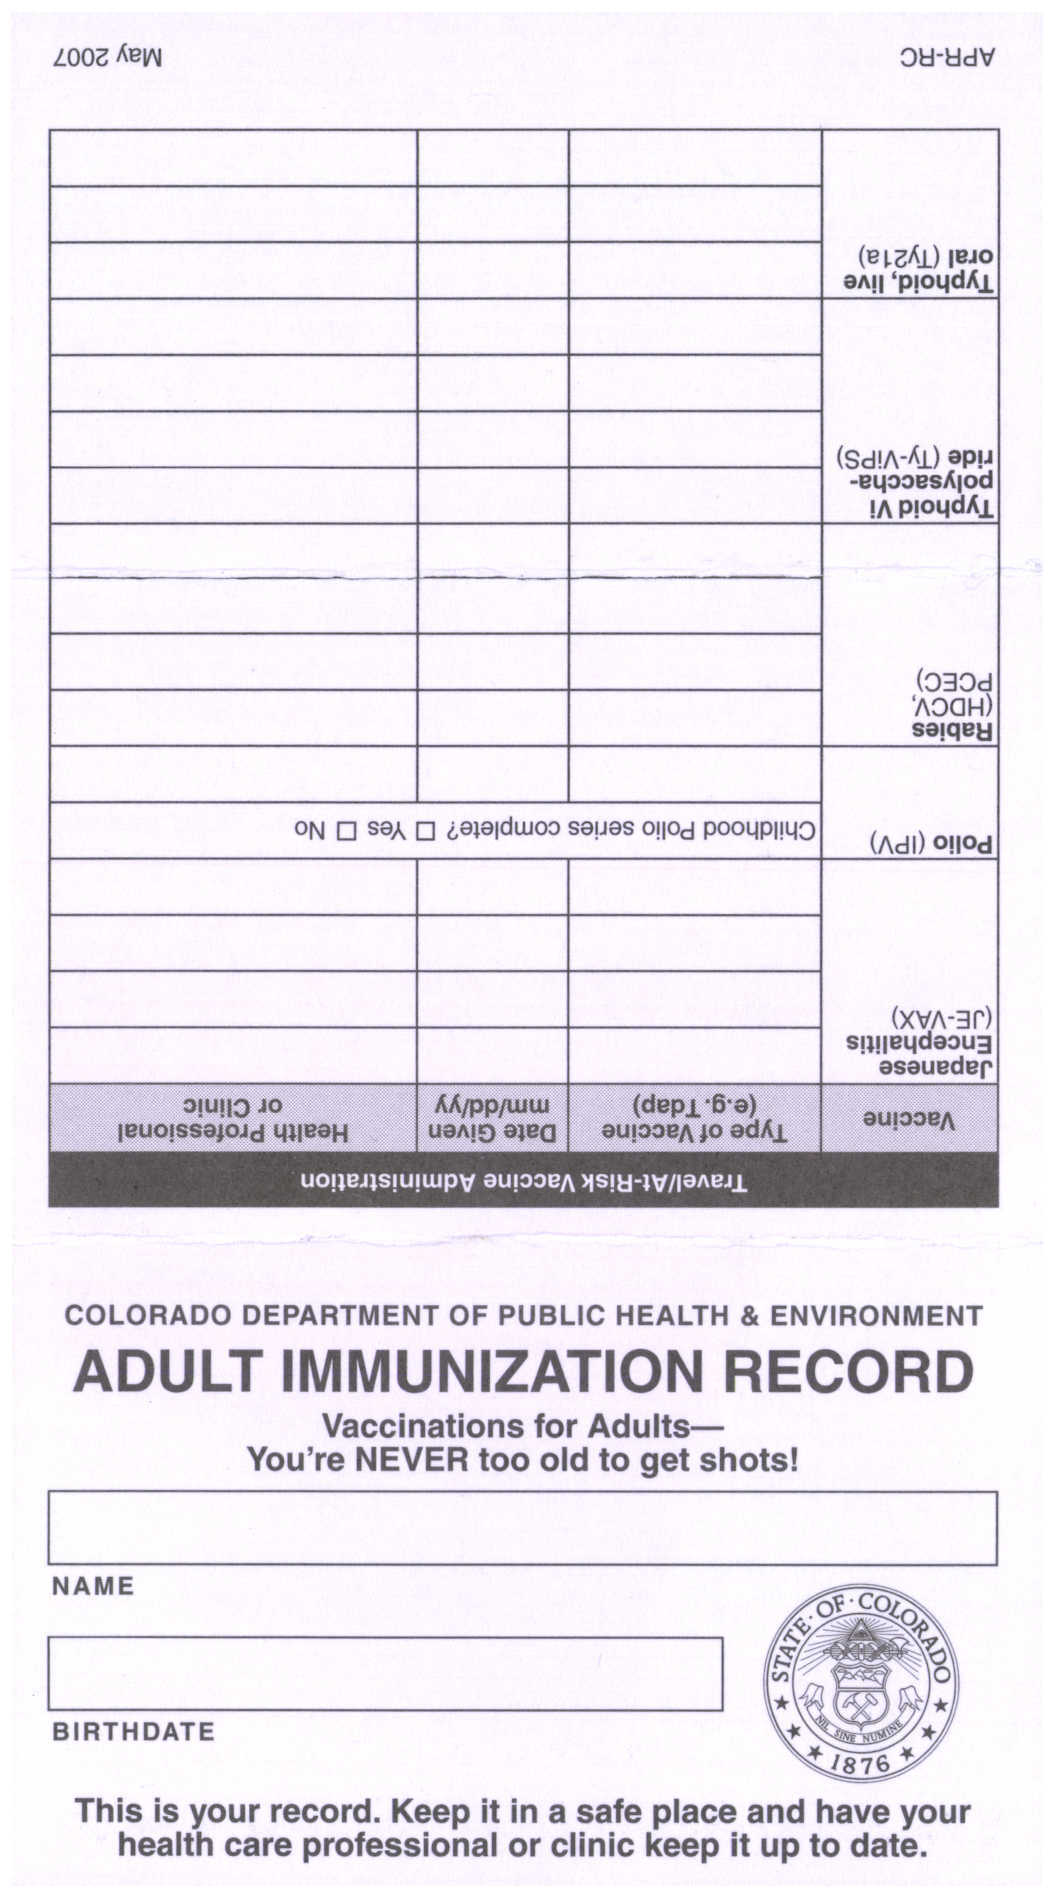 Colorado Immunization Program Printed Materials Order Form